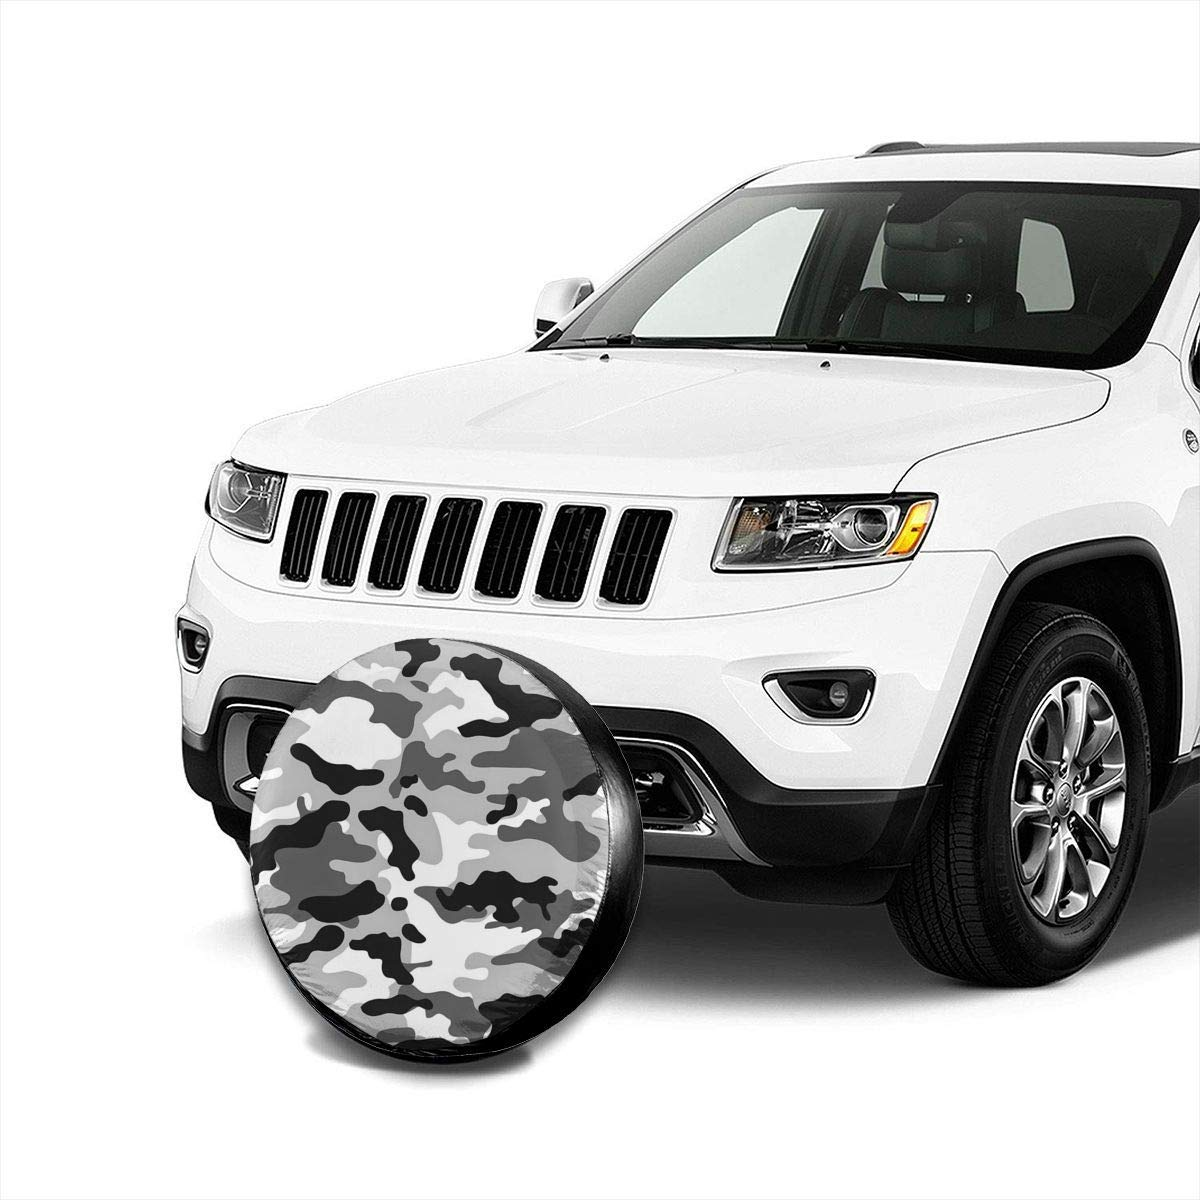 14,15,16,17 inch Black and White Camouflage Polyester Universal Spare Wheel Tire Cover Wheel Covers for Jeep Trailer RV SUV Truck Camper Travel Trailer Accessories Vbnbvn Housses de pneus